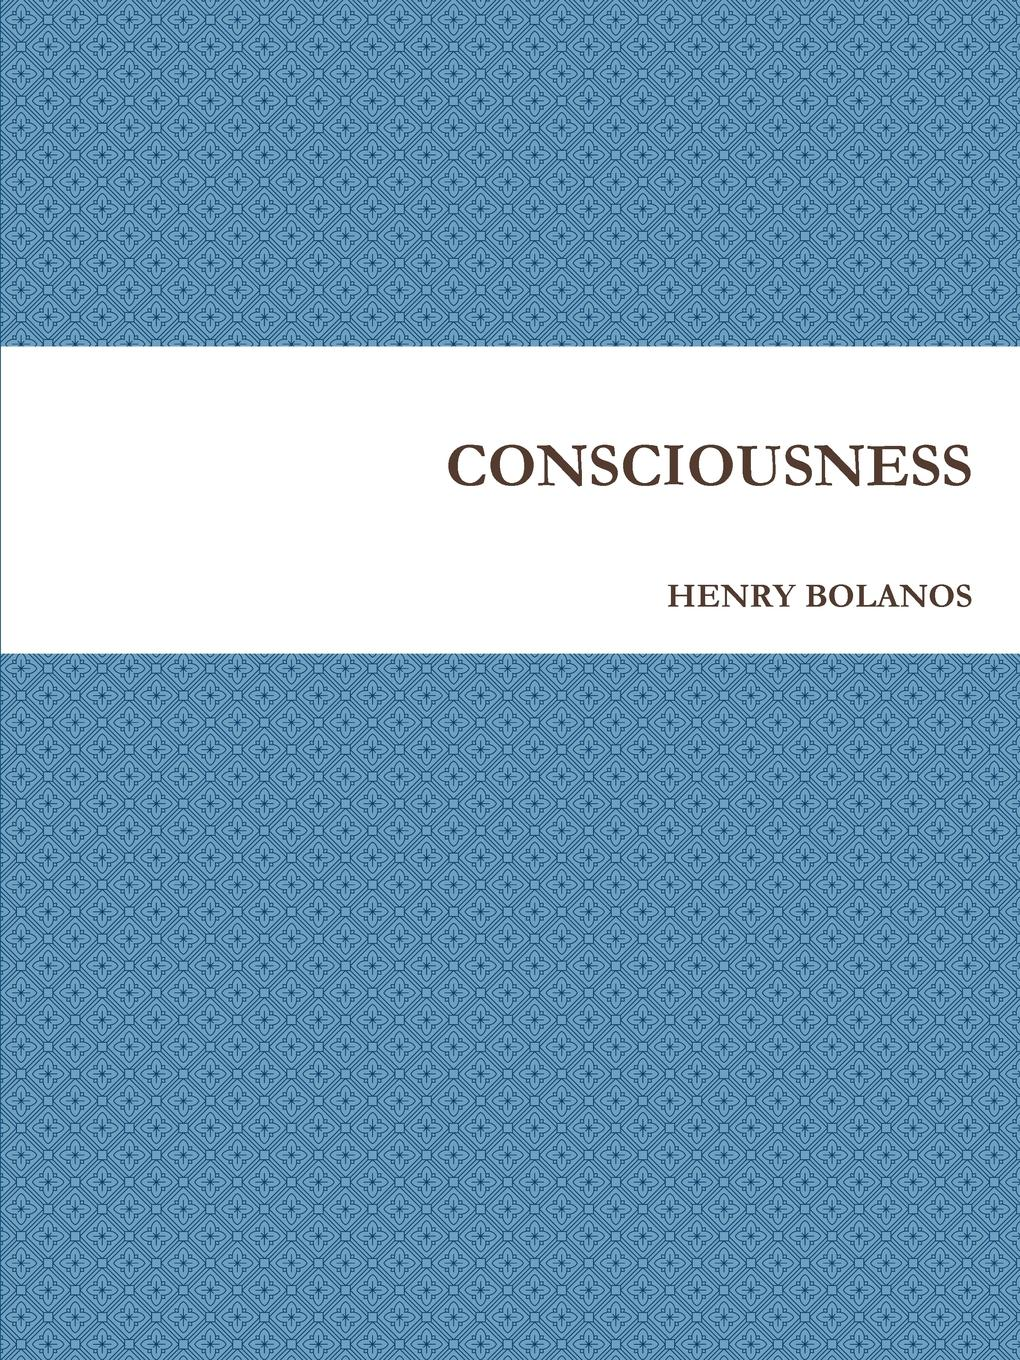 HENRY BOLANOS CONSCIOUSNESS ludwig dylan intentionality information and consciousness